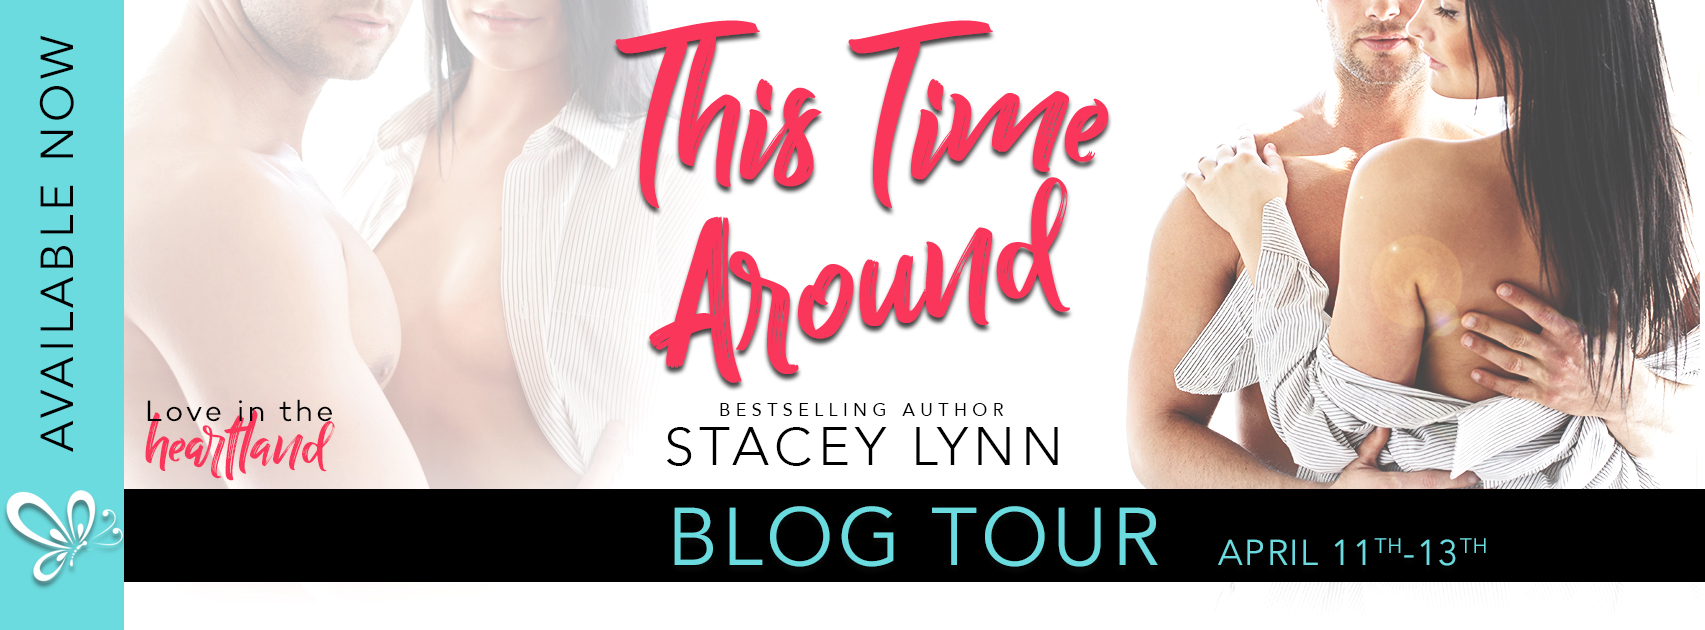 THIS TIME AROUND by Stacey Lynn @staceylynnbooks @jennw23 #Tour #Review #Excerpt #TheUnratedBookshelf